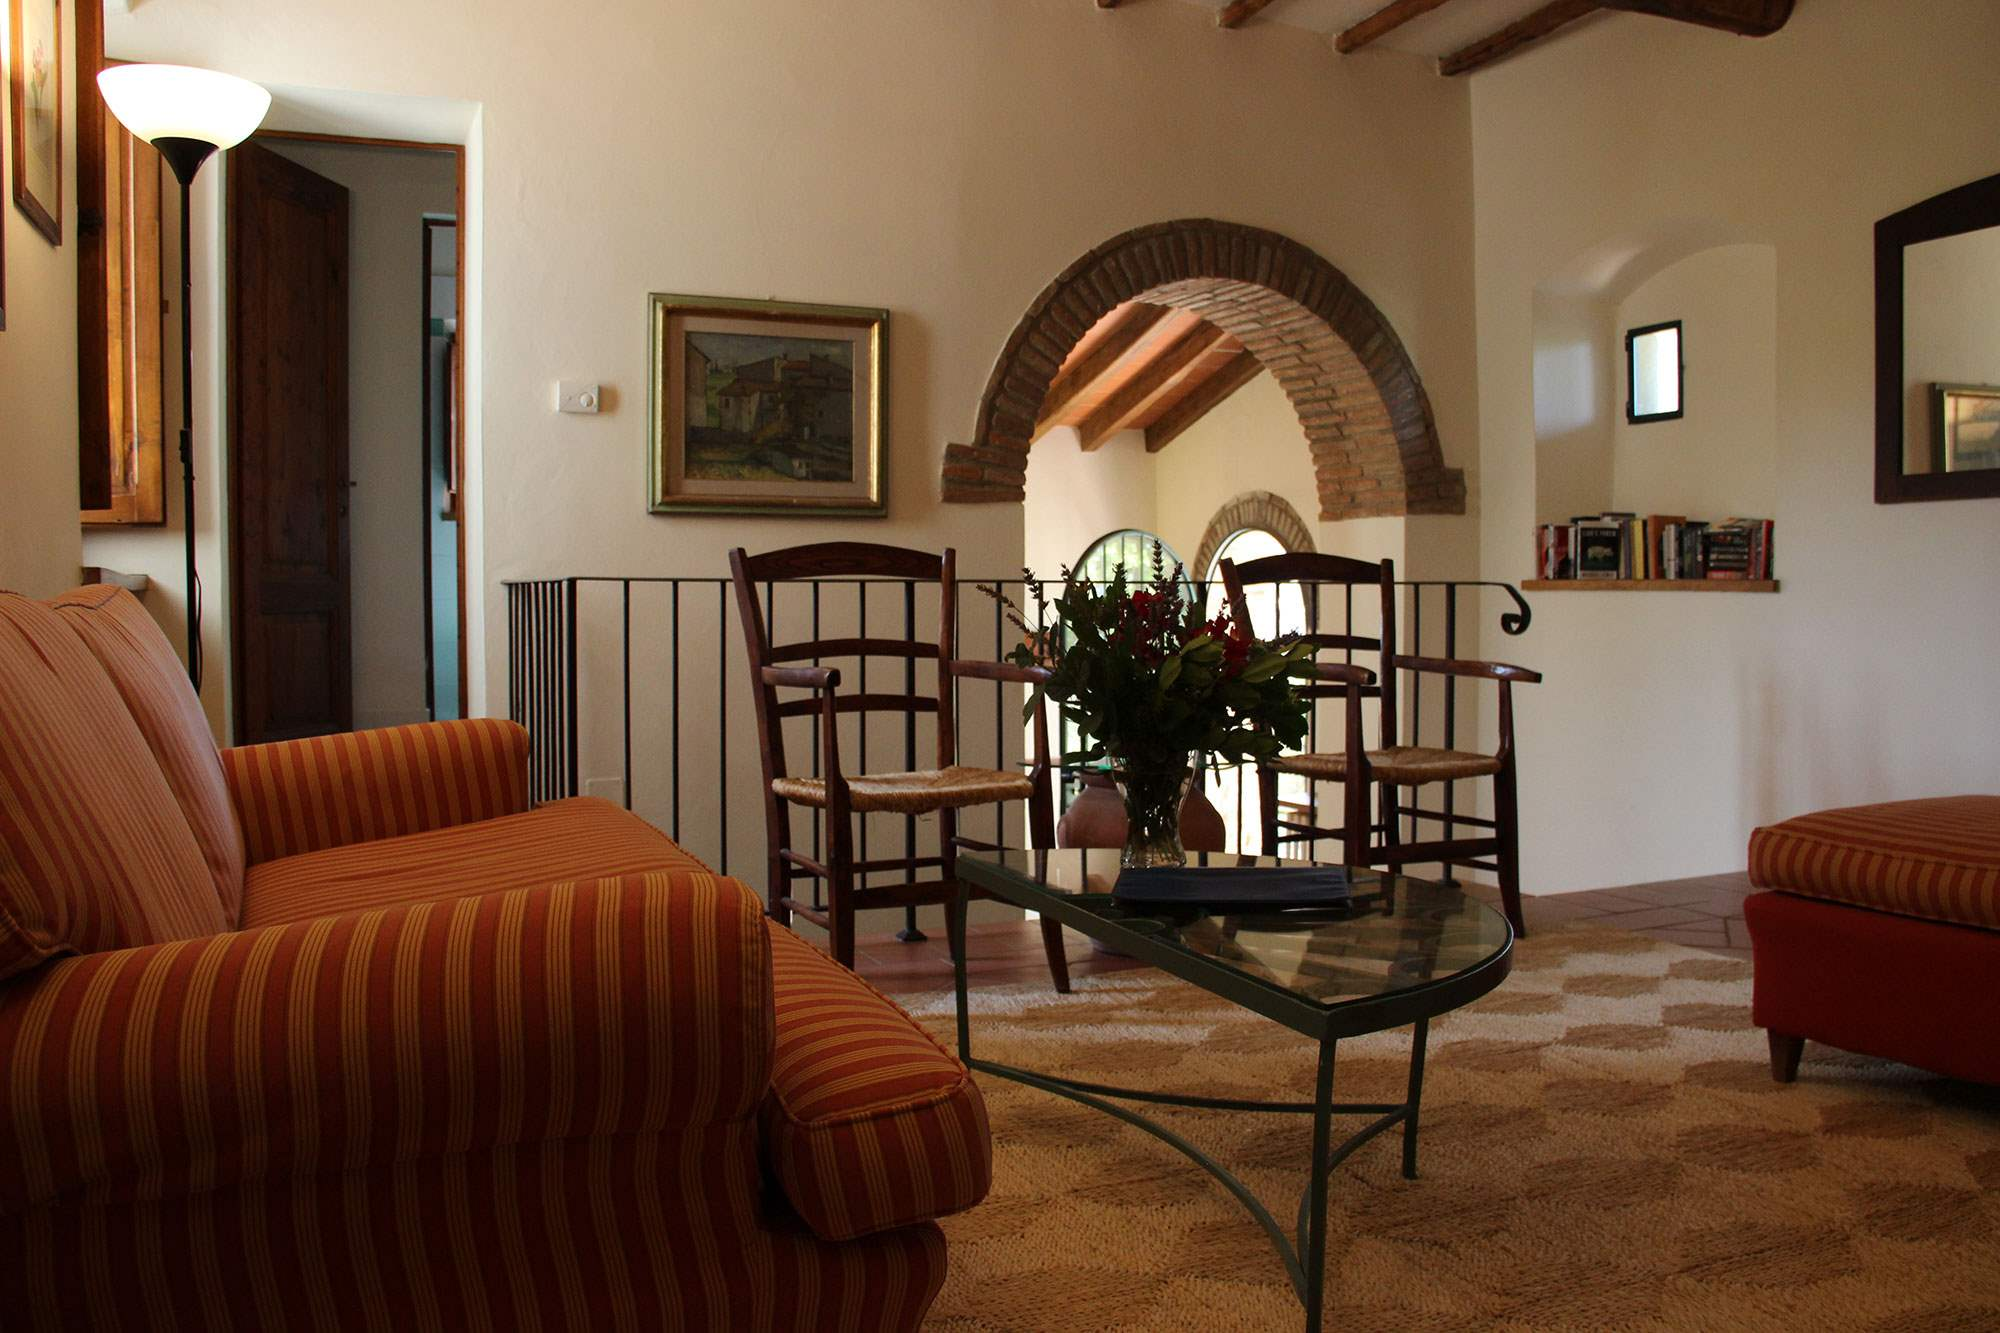 Casa Ferruzzi 2, 3 bedroom apartment in Chianti & Countryside, Tuscany Photo #6